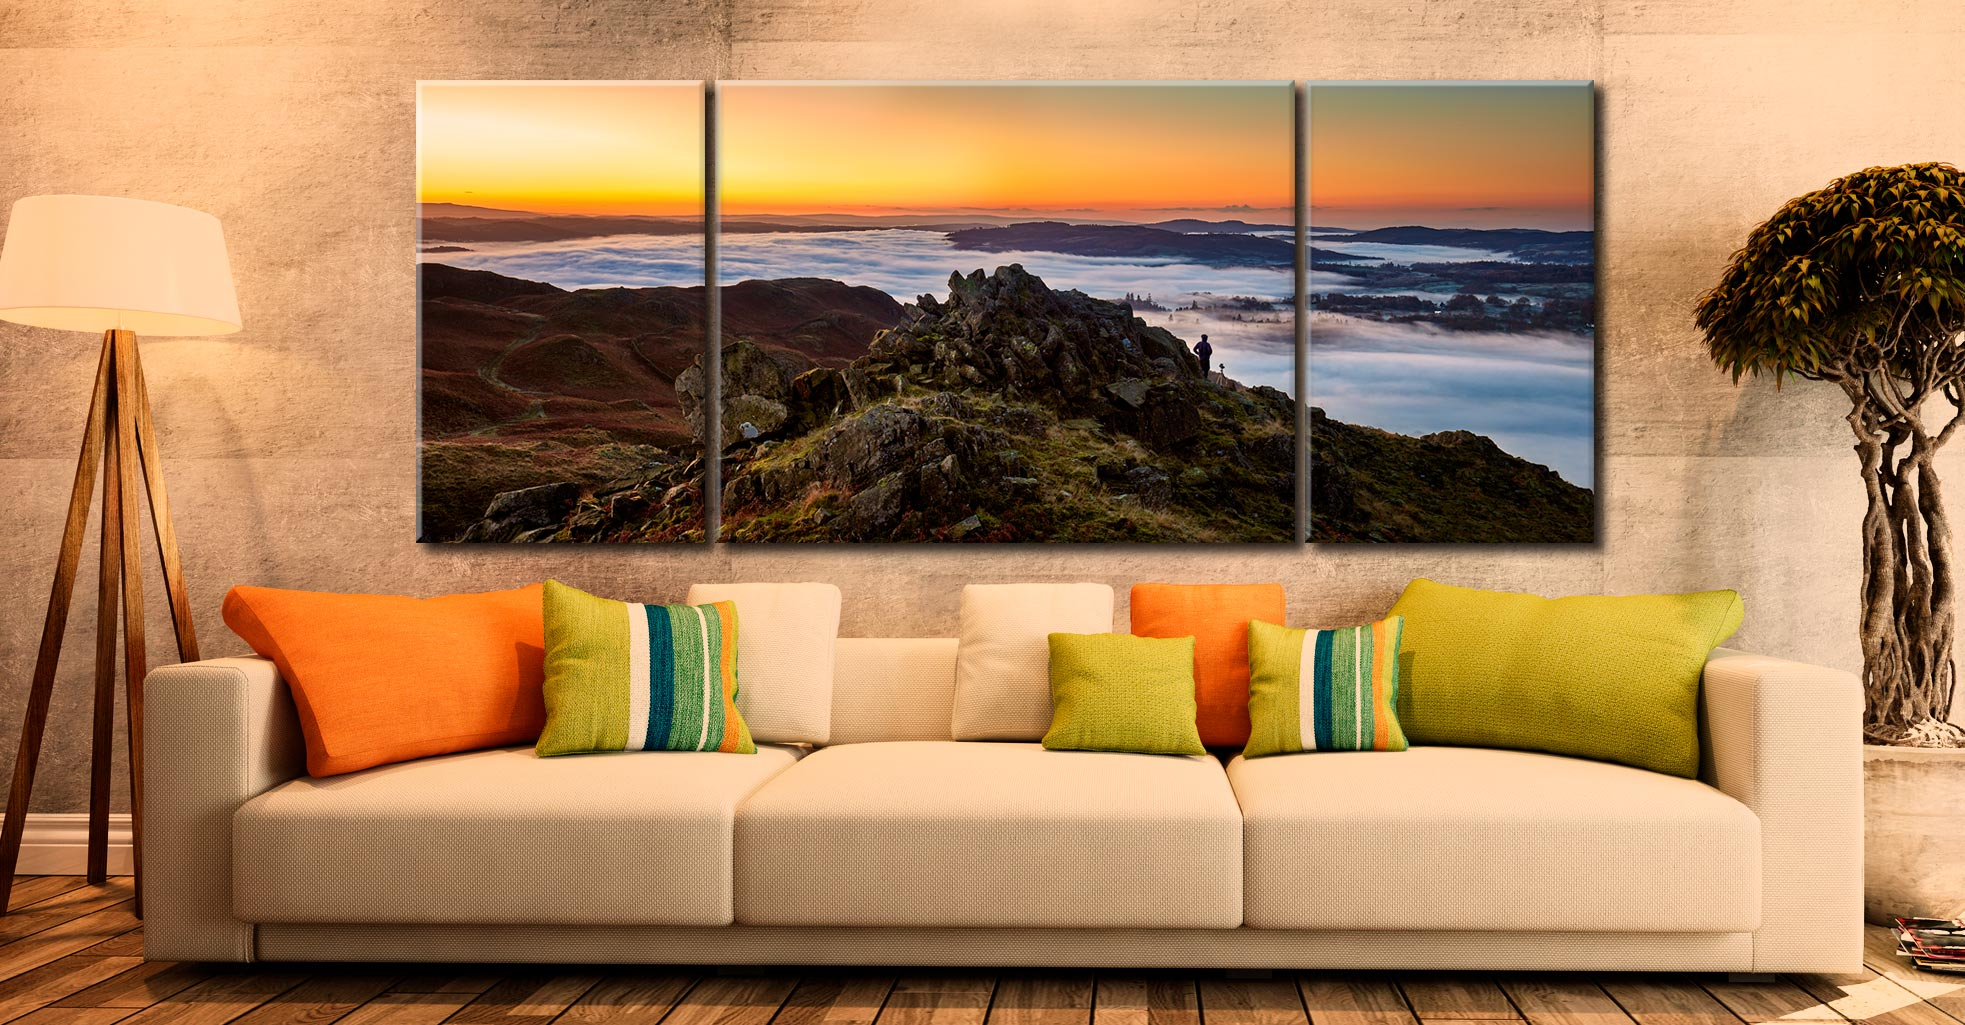 Lakes Under a Blanket - 3 Panel Wide Mid Canvas on Wall